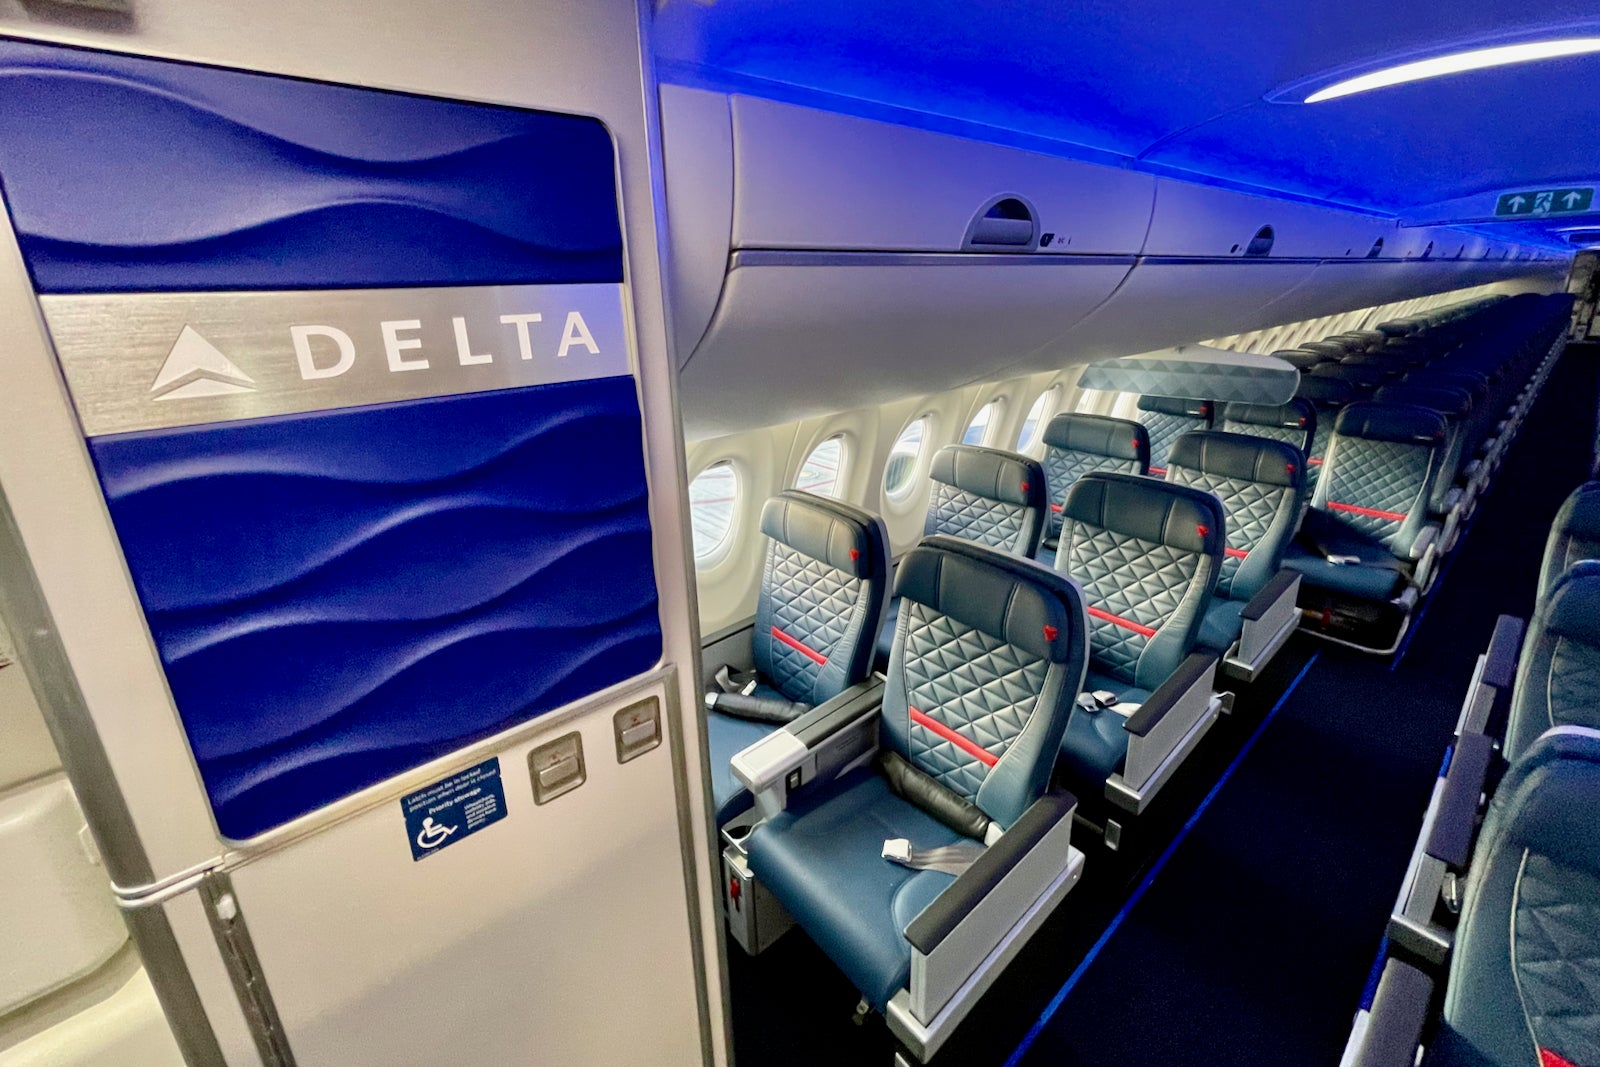 There's lots to learn from Delta's postponed A220-300 inaugural